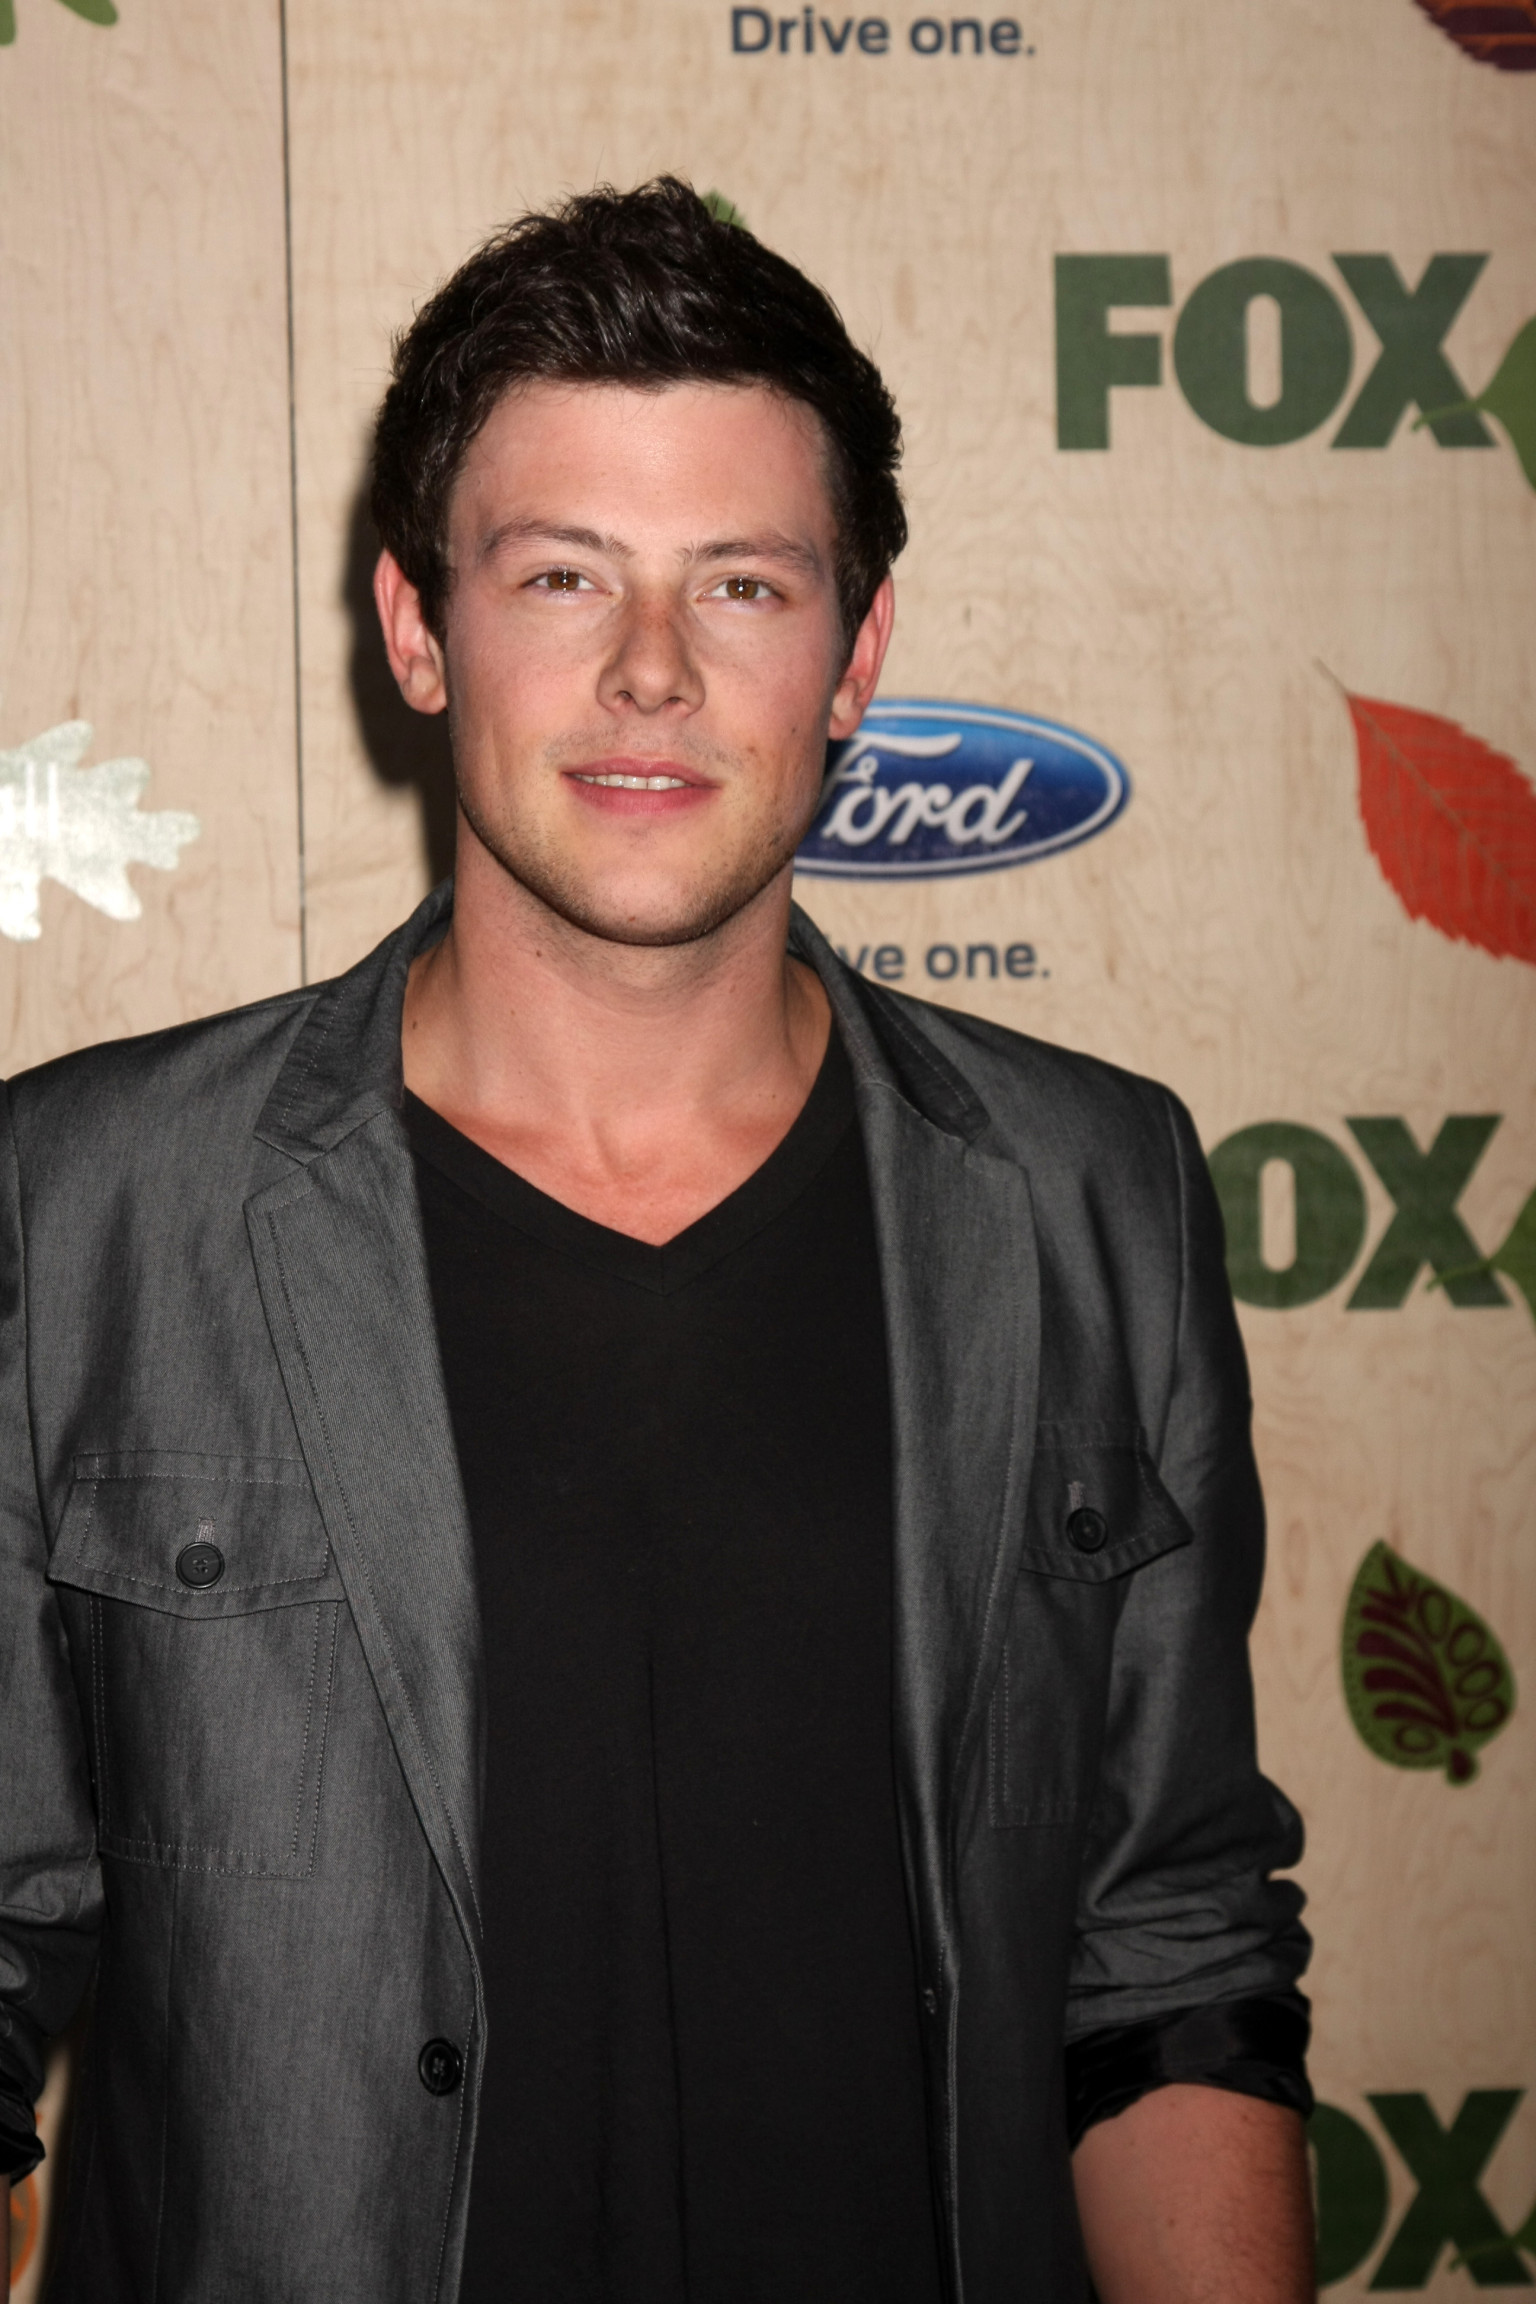 Cory monteith wallpapers high quality download free voltagebd Choice Image